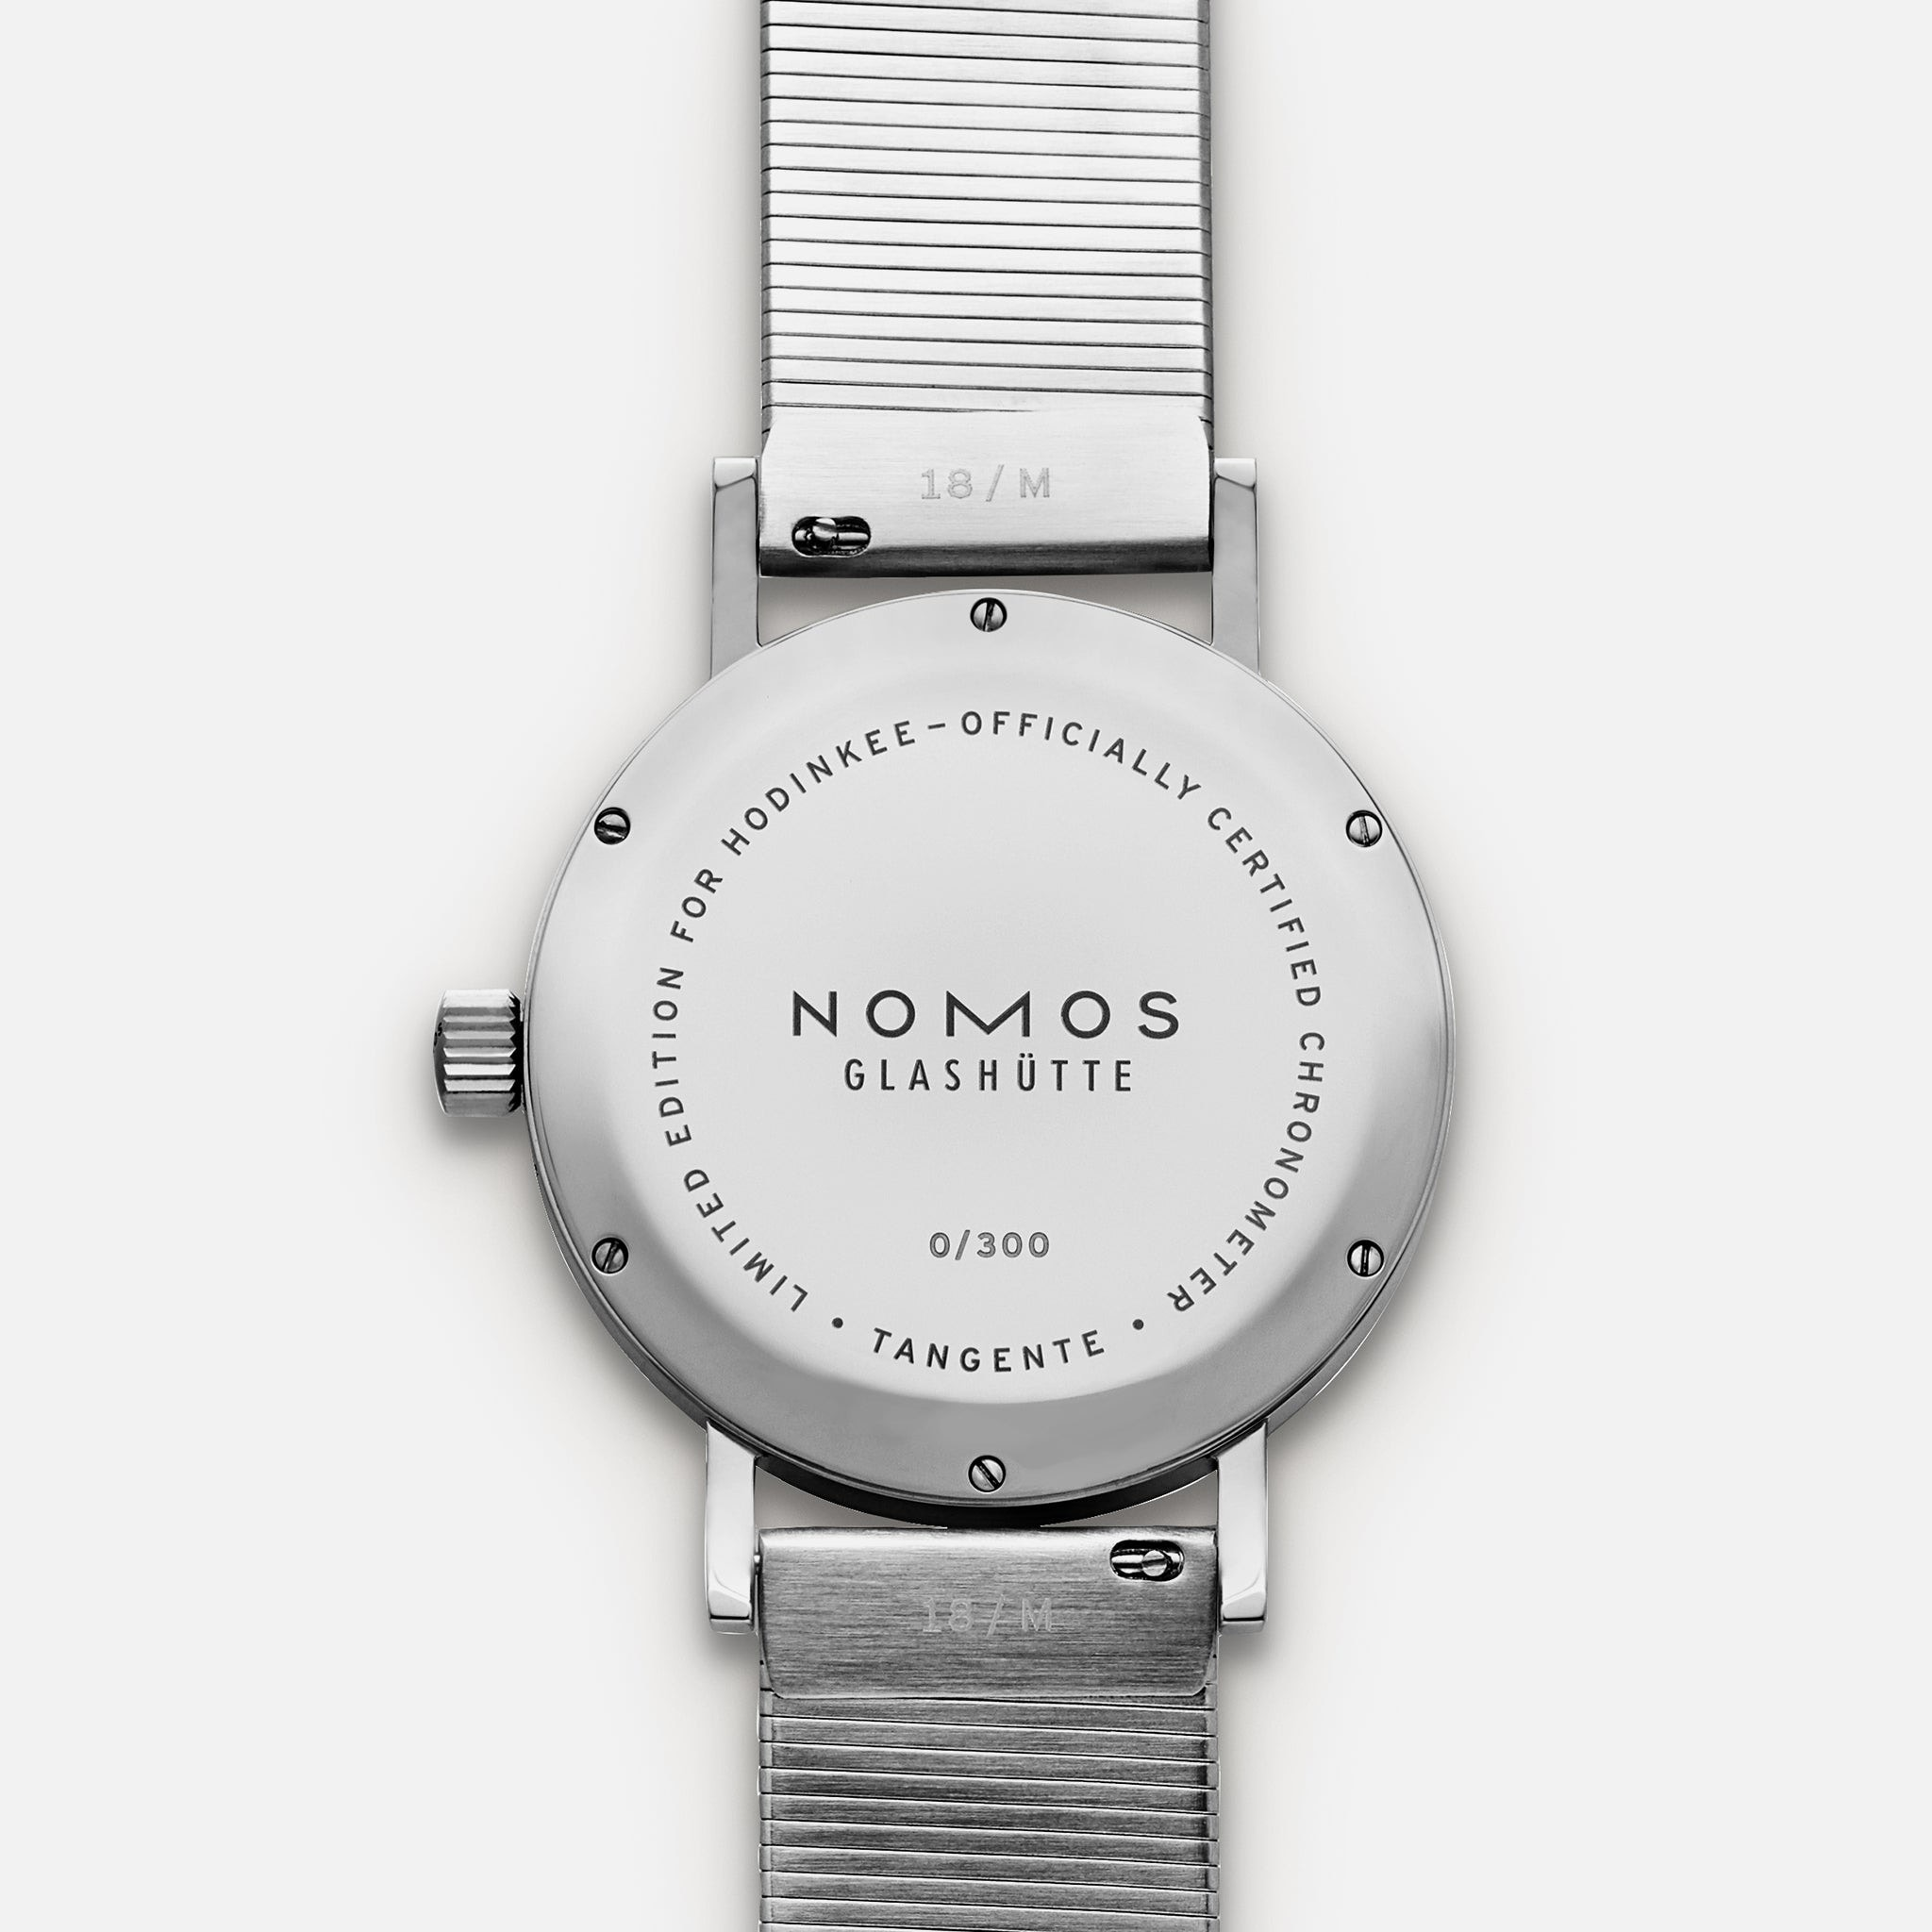 https://hodinkee-shopify.imgix.net/s/files/1/0146/0732/products/LE-Nomos-Natback_2048x2048.jpg?v=1575990281&auto=format&fit=max&q=88&ixlib=react-8.4.0&w=530